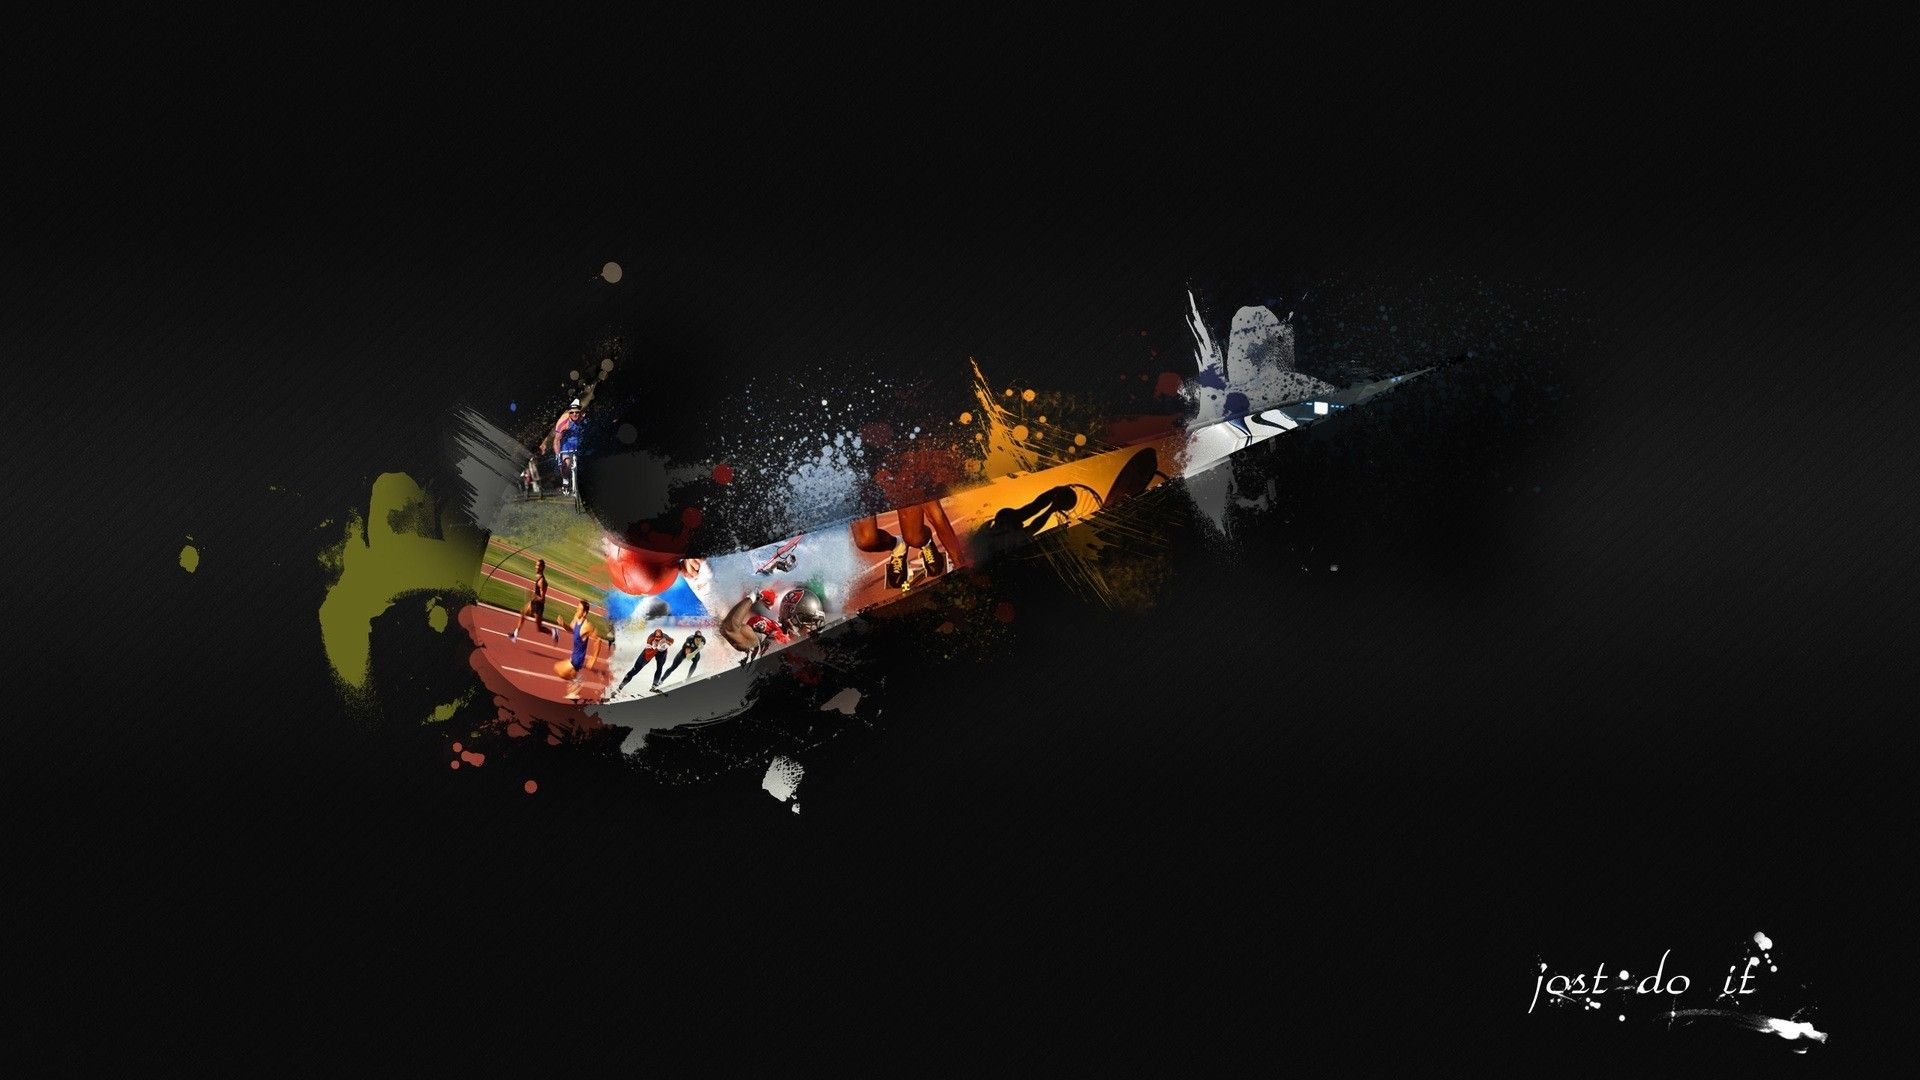 Nike Cool Logo wallpaper | 1920x1080 | #69443